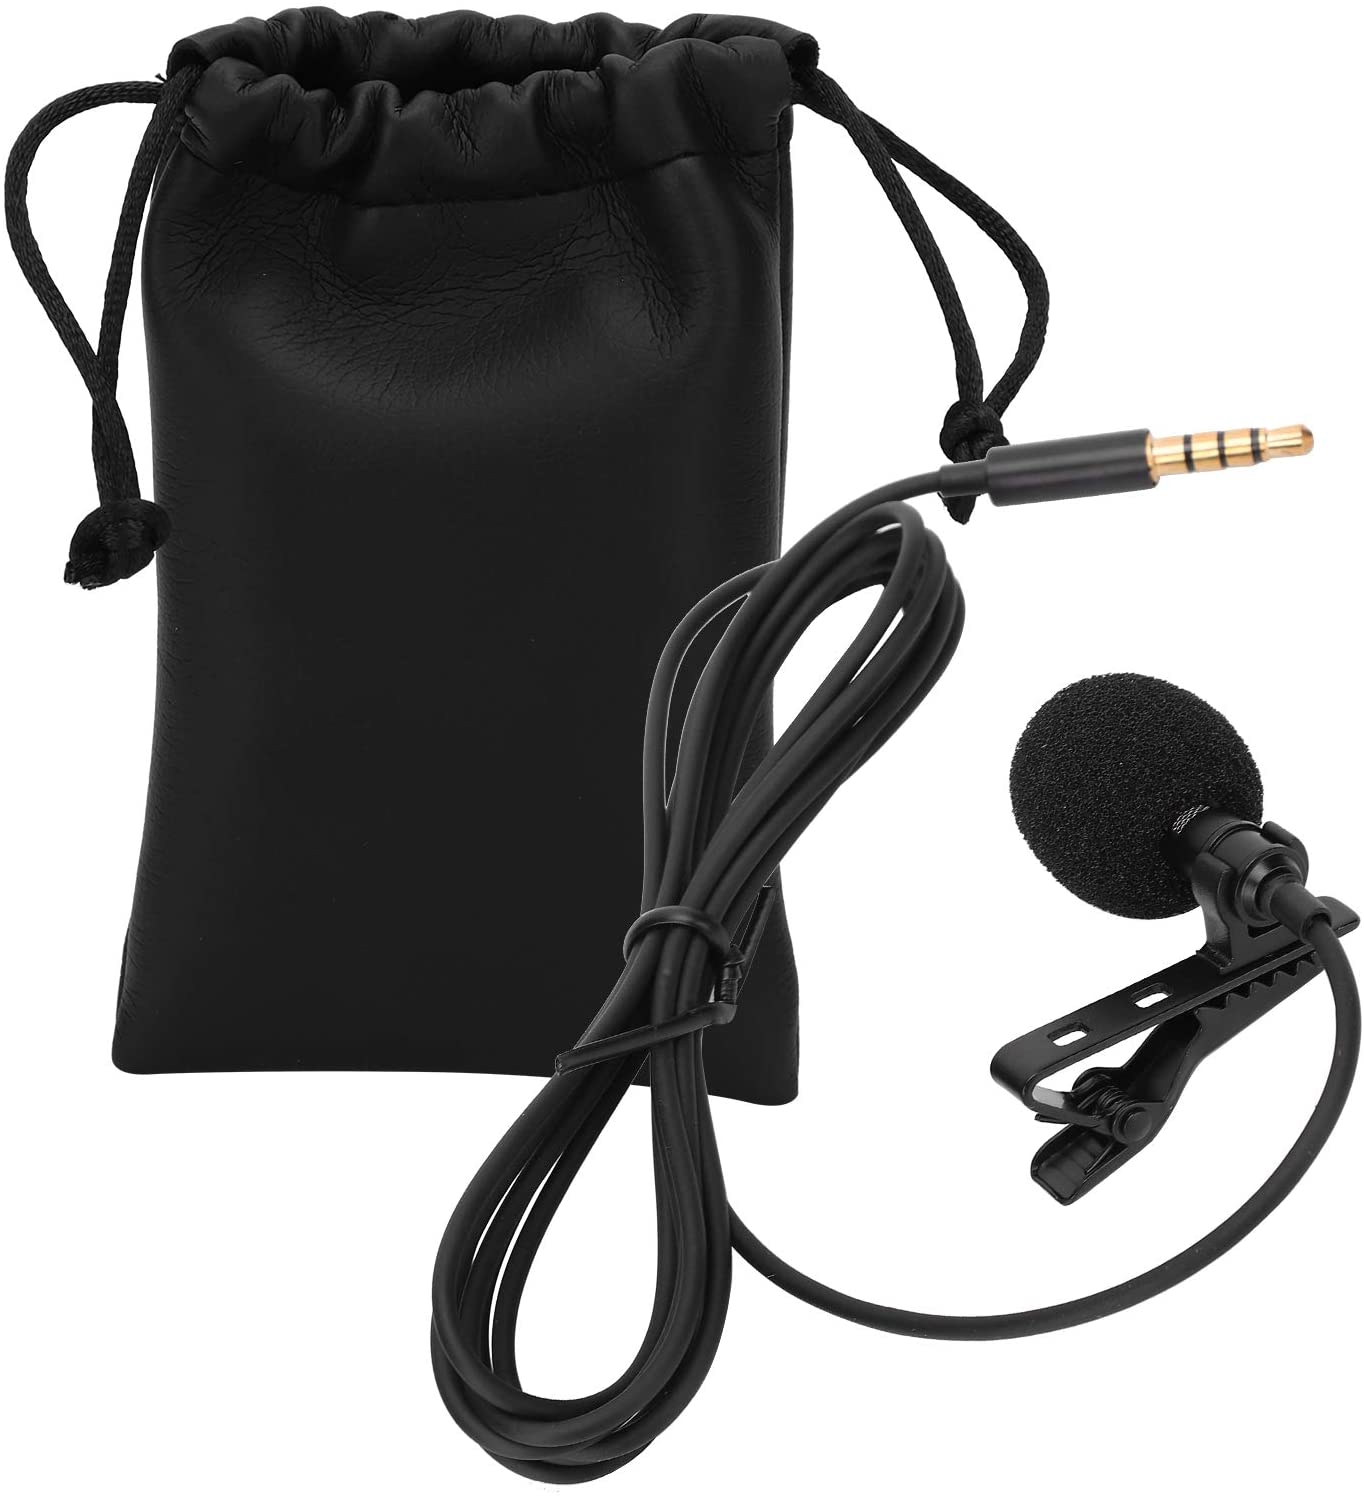 Acouto Lavalier Microphone, Mini Wired Lavalier Lapel Microphone Collar Clip Mic for Mobile Phone Video Recording